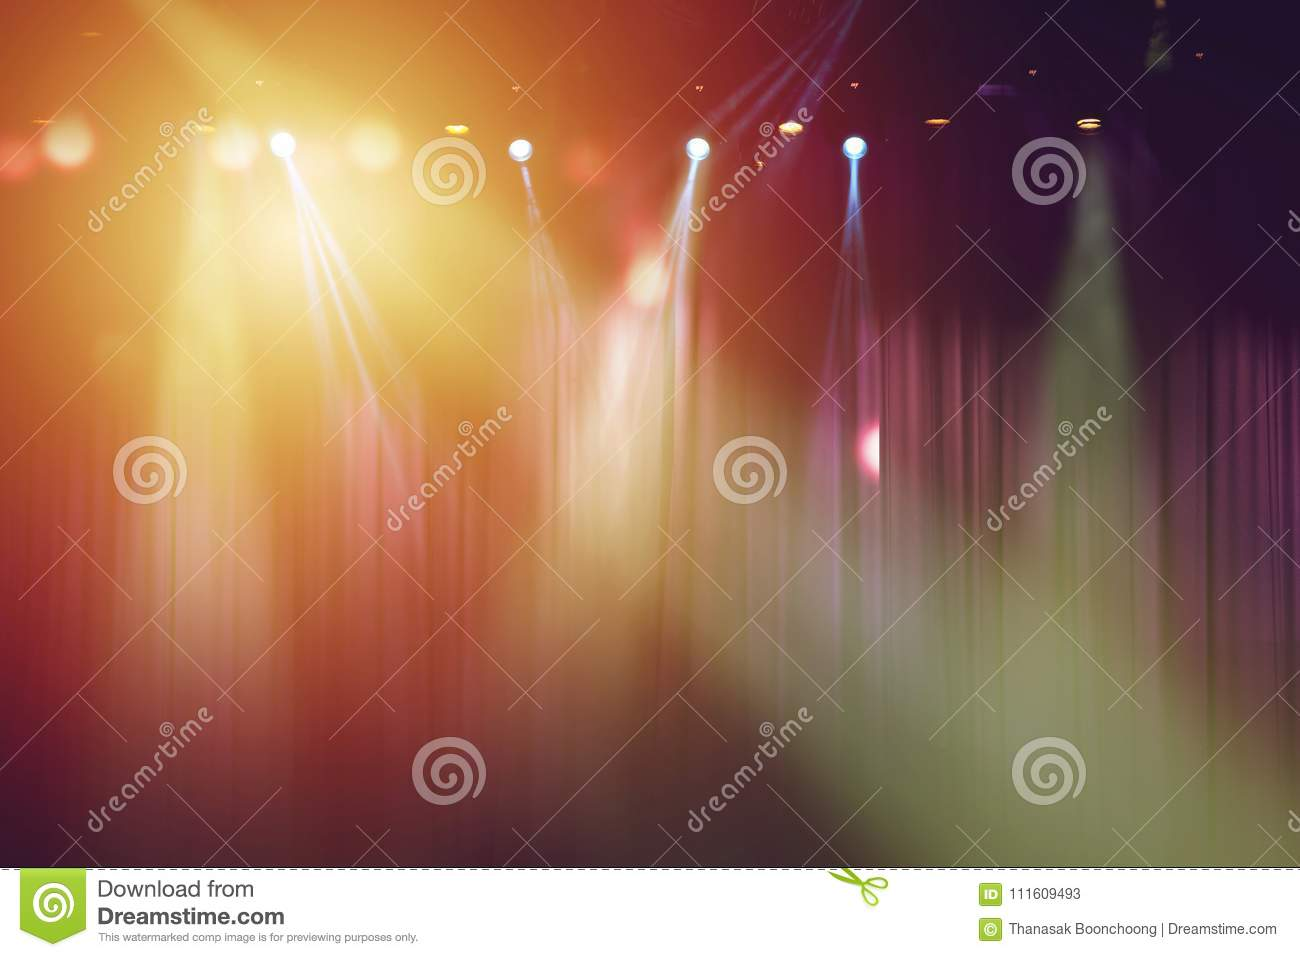 Blurred lights on stage and red curtain theatre